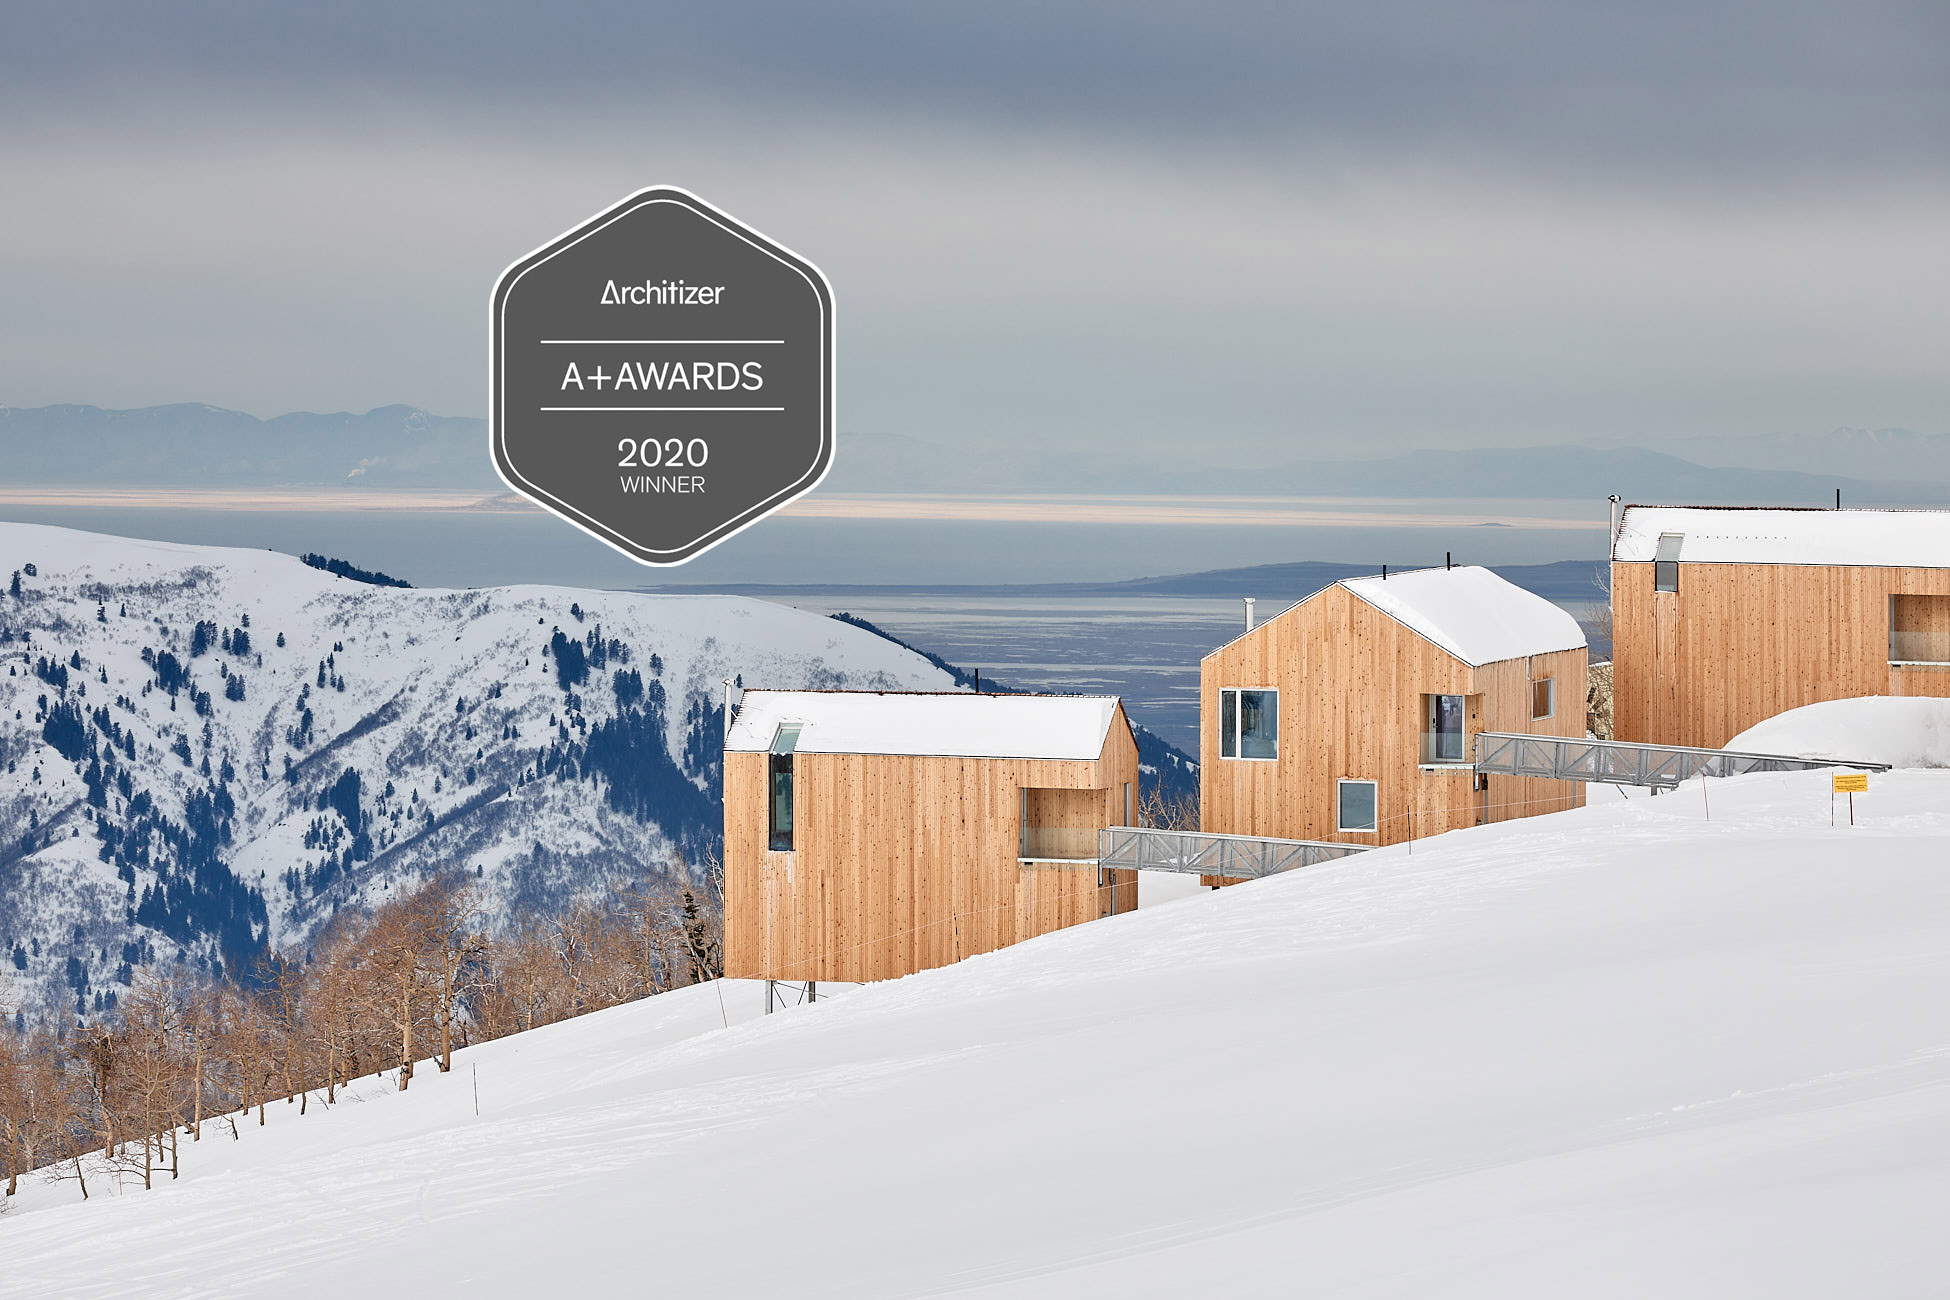 doublespace wins 2020 Architizer A+ Award for Photography and Video